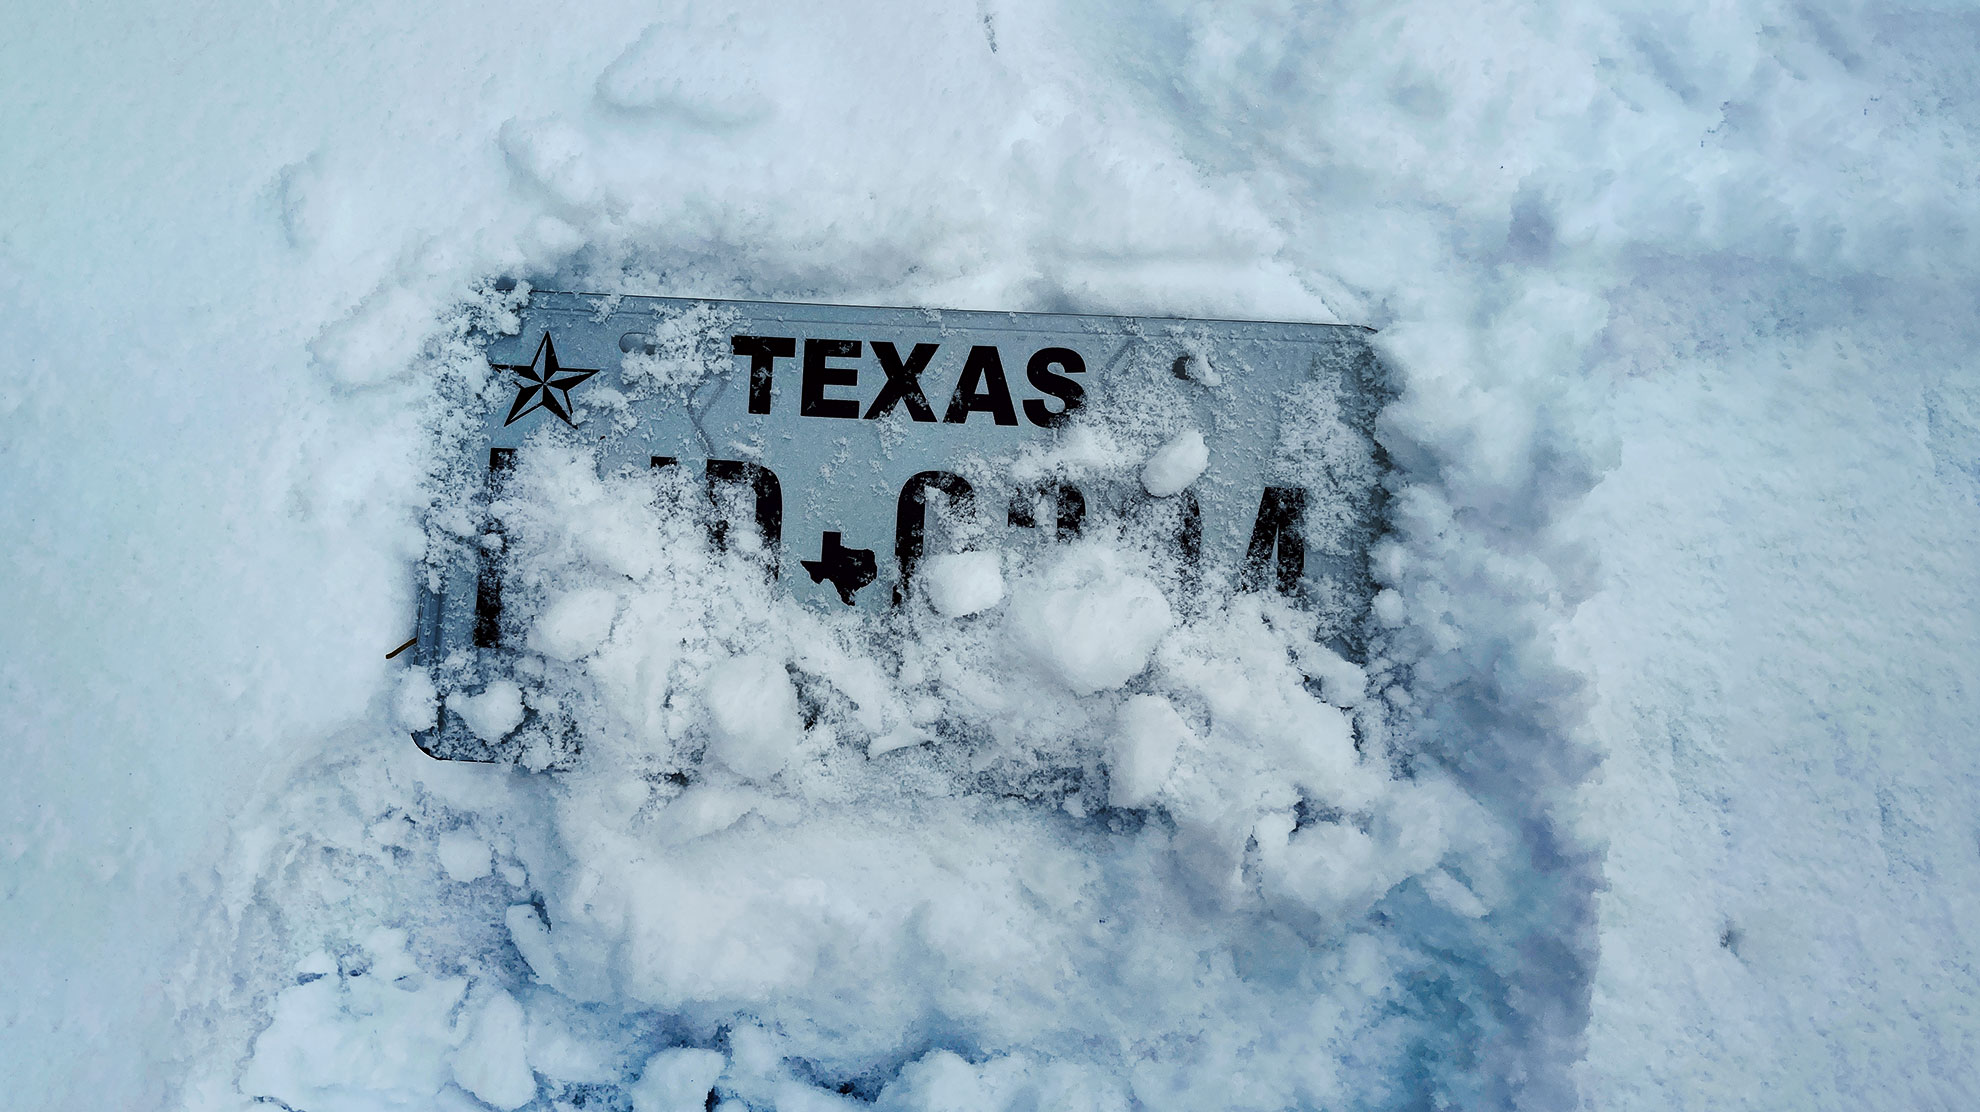 Texas license plate under snow